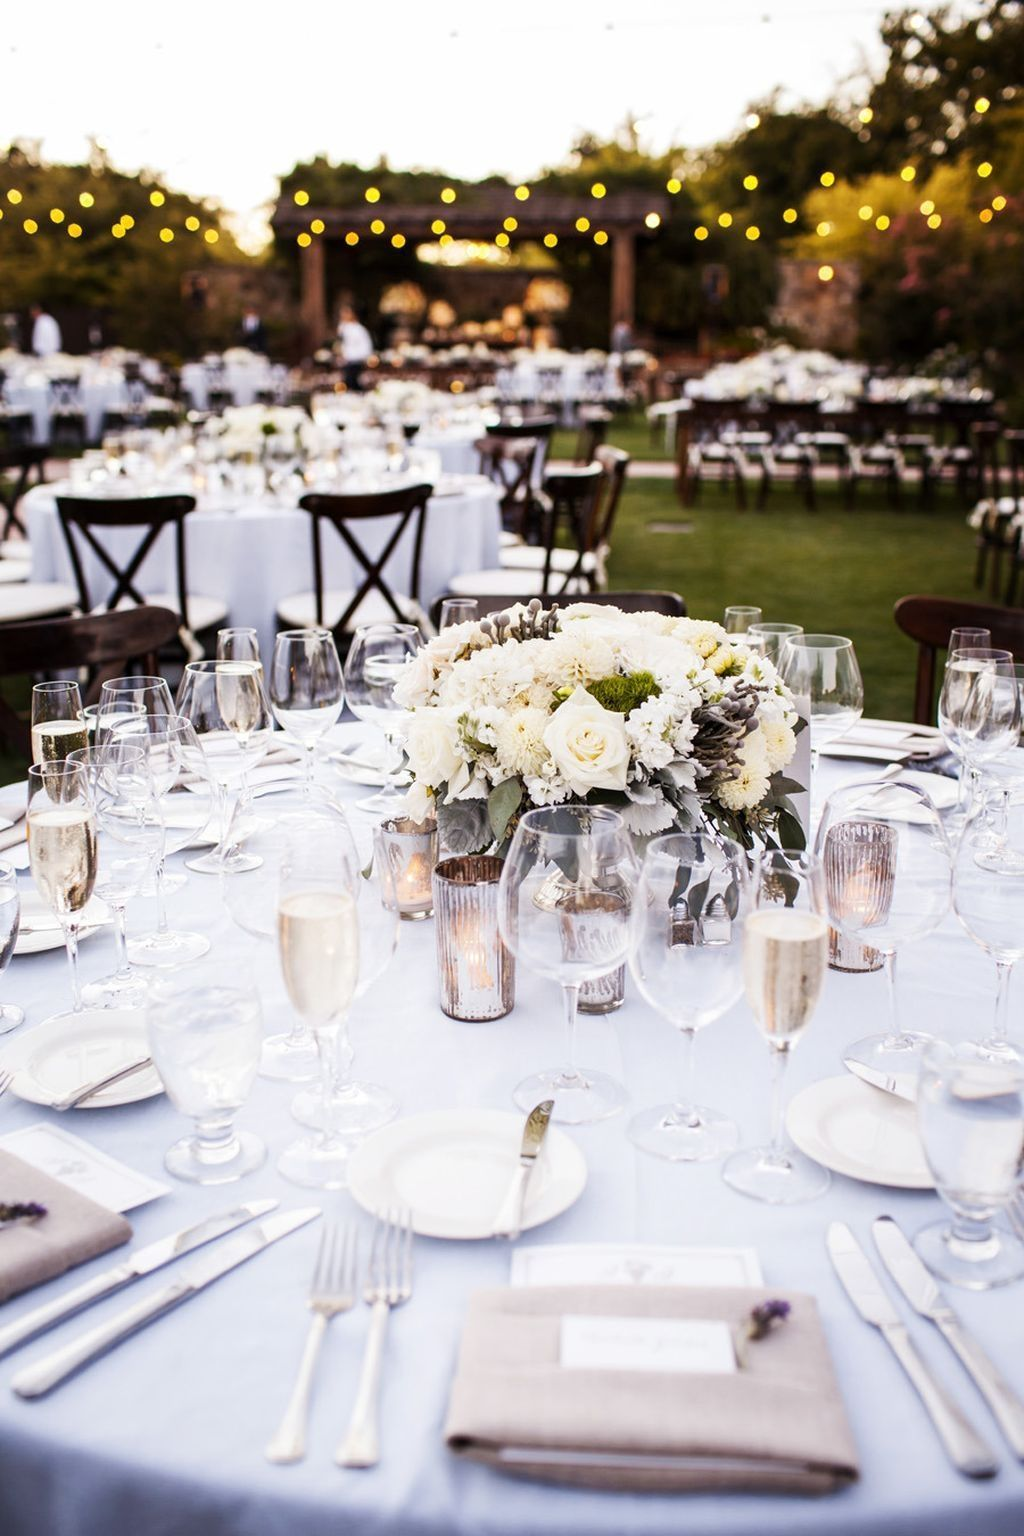 109 Cheap but Elegant Outdoor Wedding Centerpieces Ideas | Pinterest ...